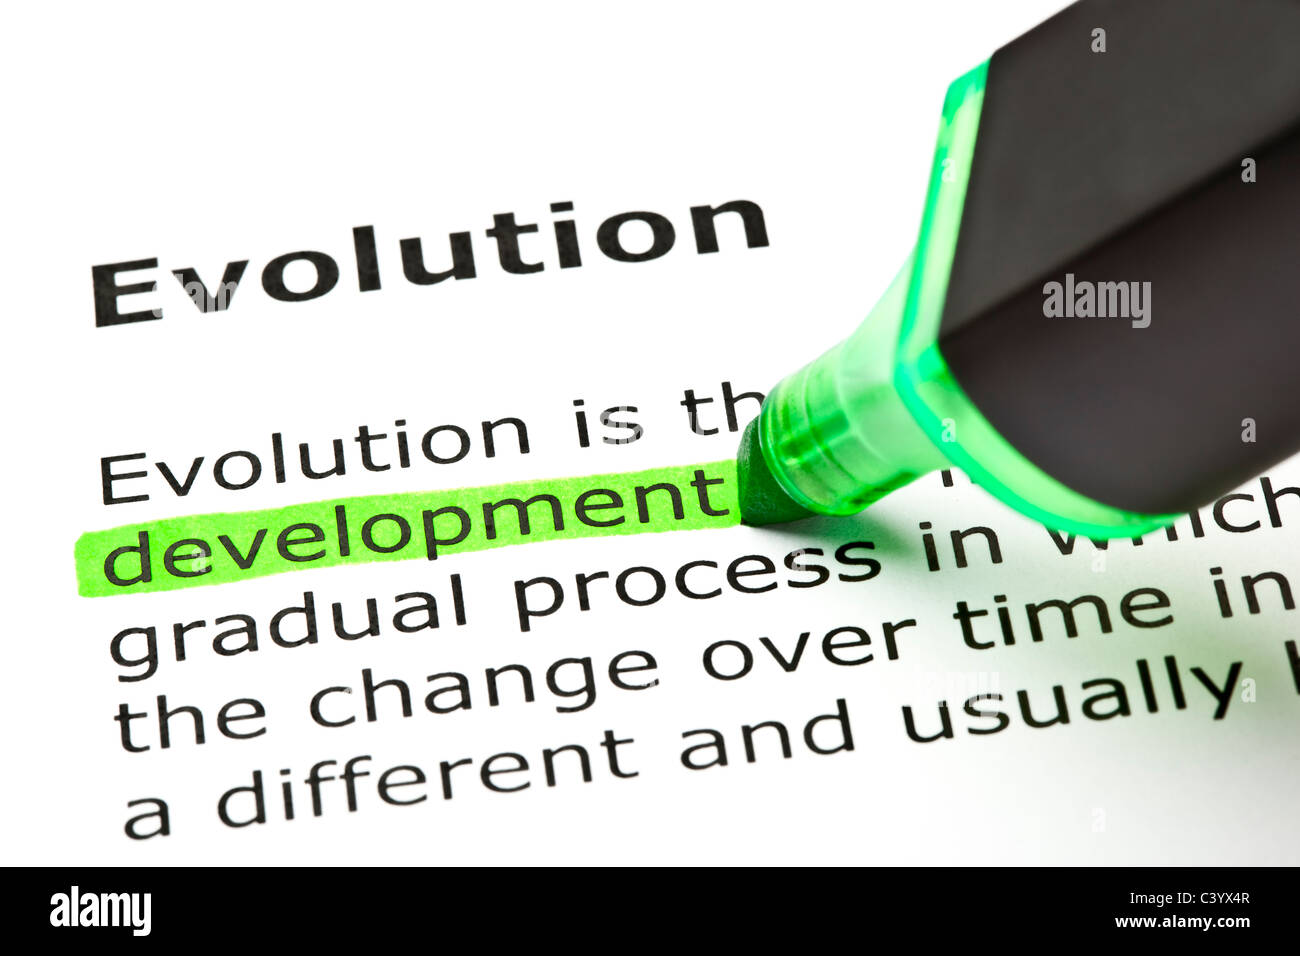 'Development' highlighted in green, under the heading 'Evolution' - Stock Image